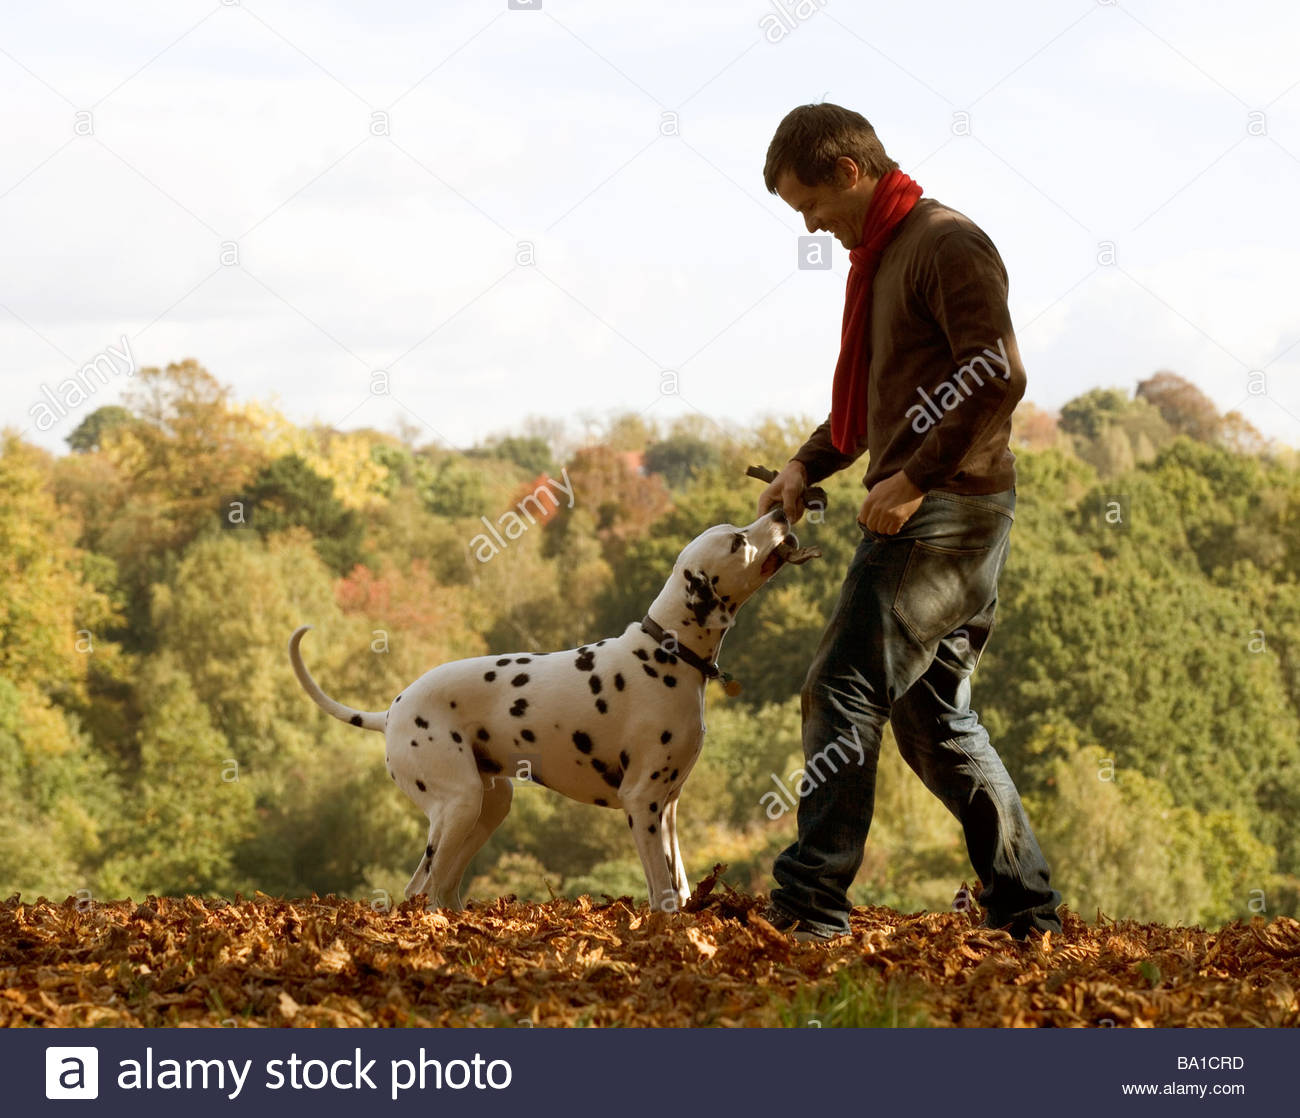 A young man playing with his dog amongst the autumn leaves Stock Photo